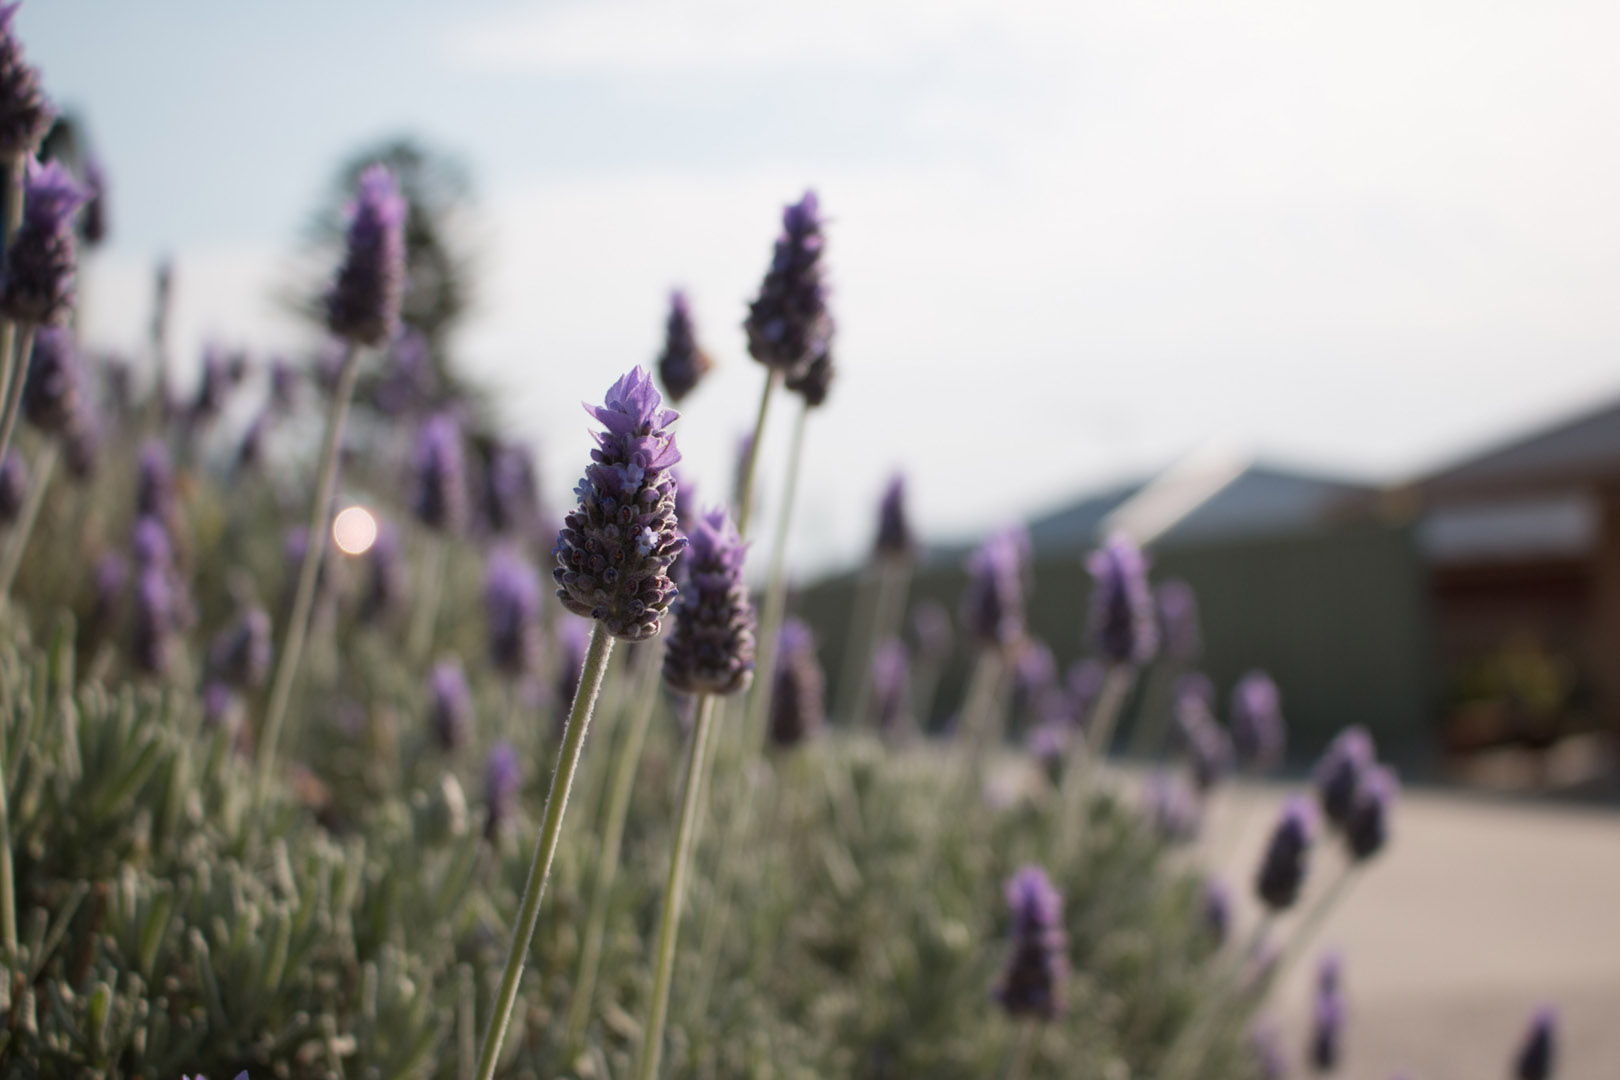 Lavender in the HOPES Inc Community